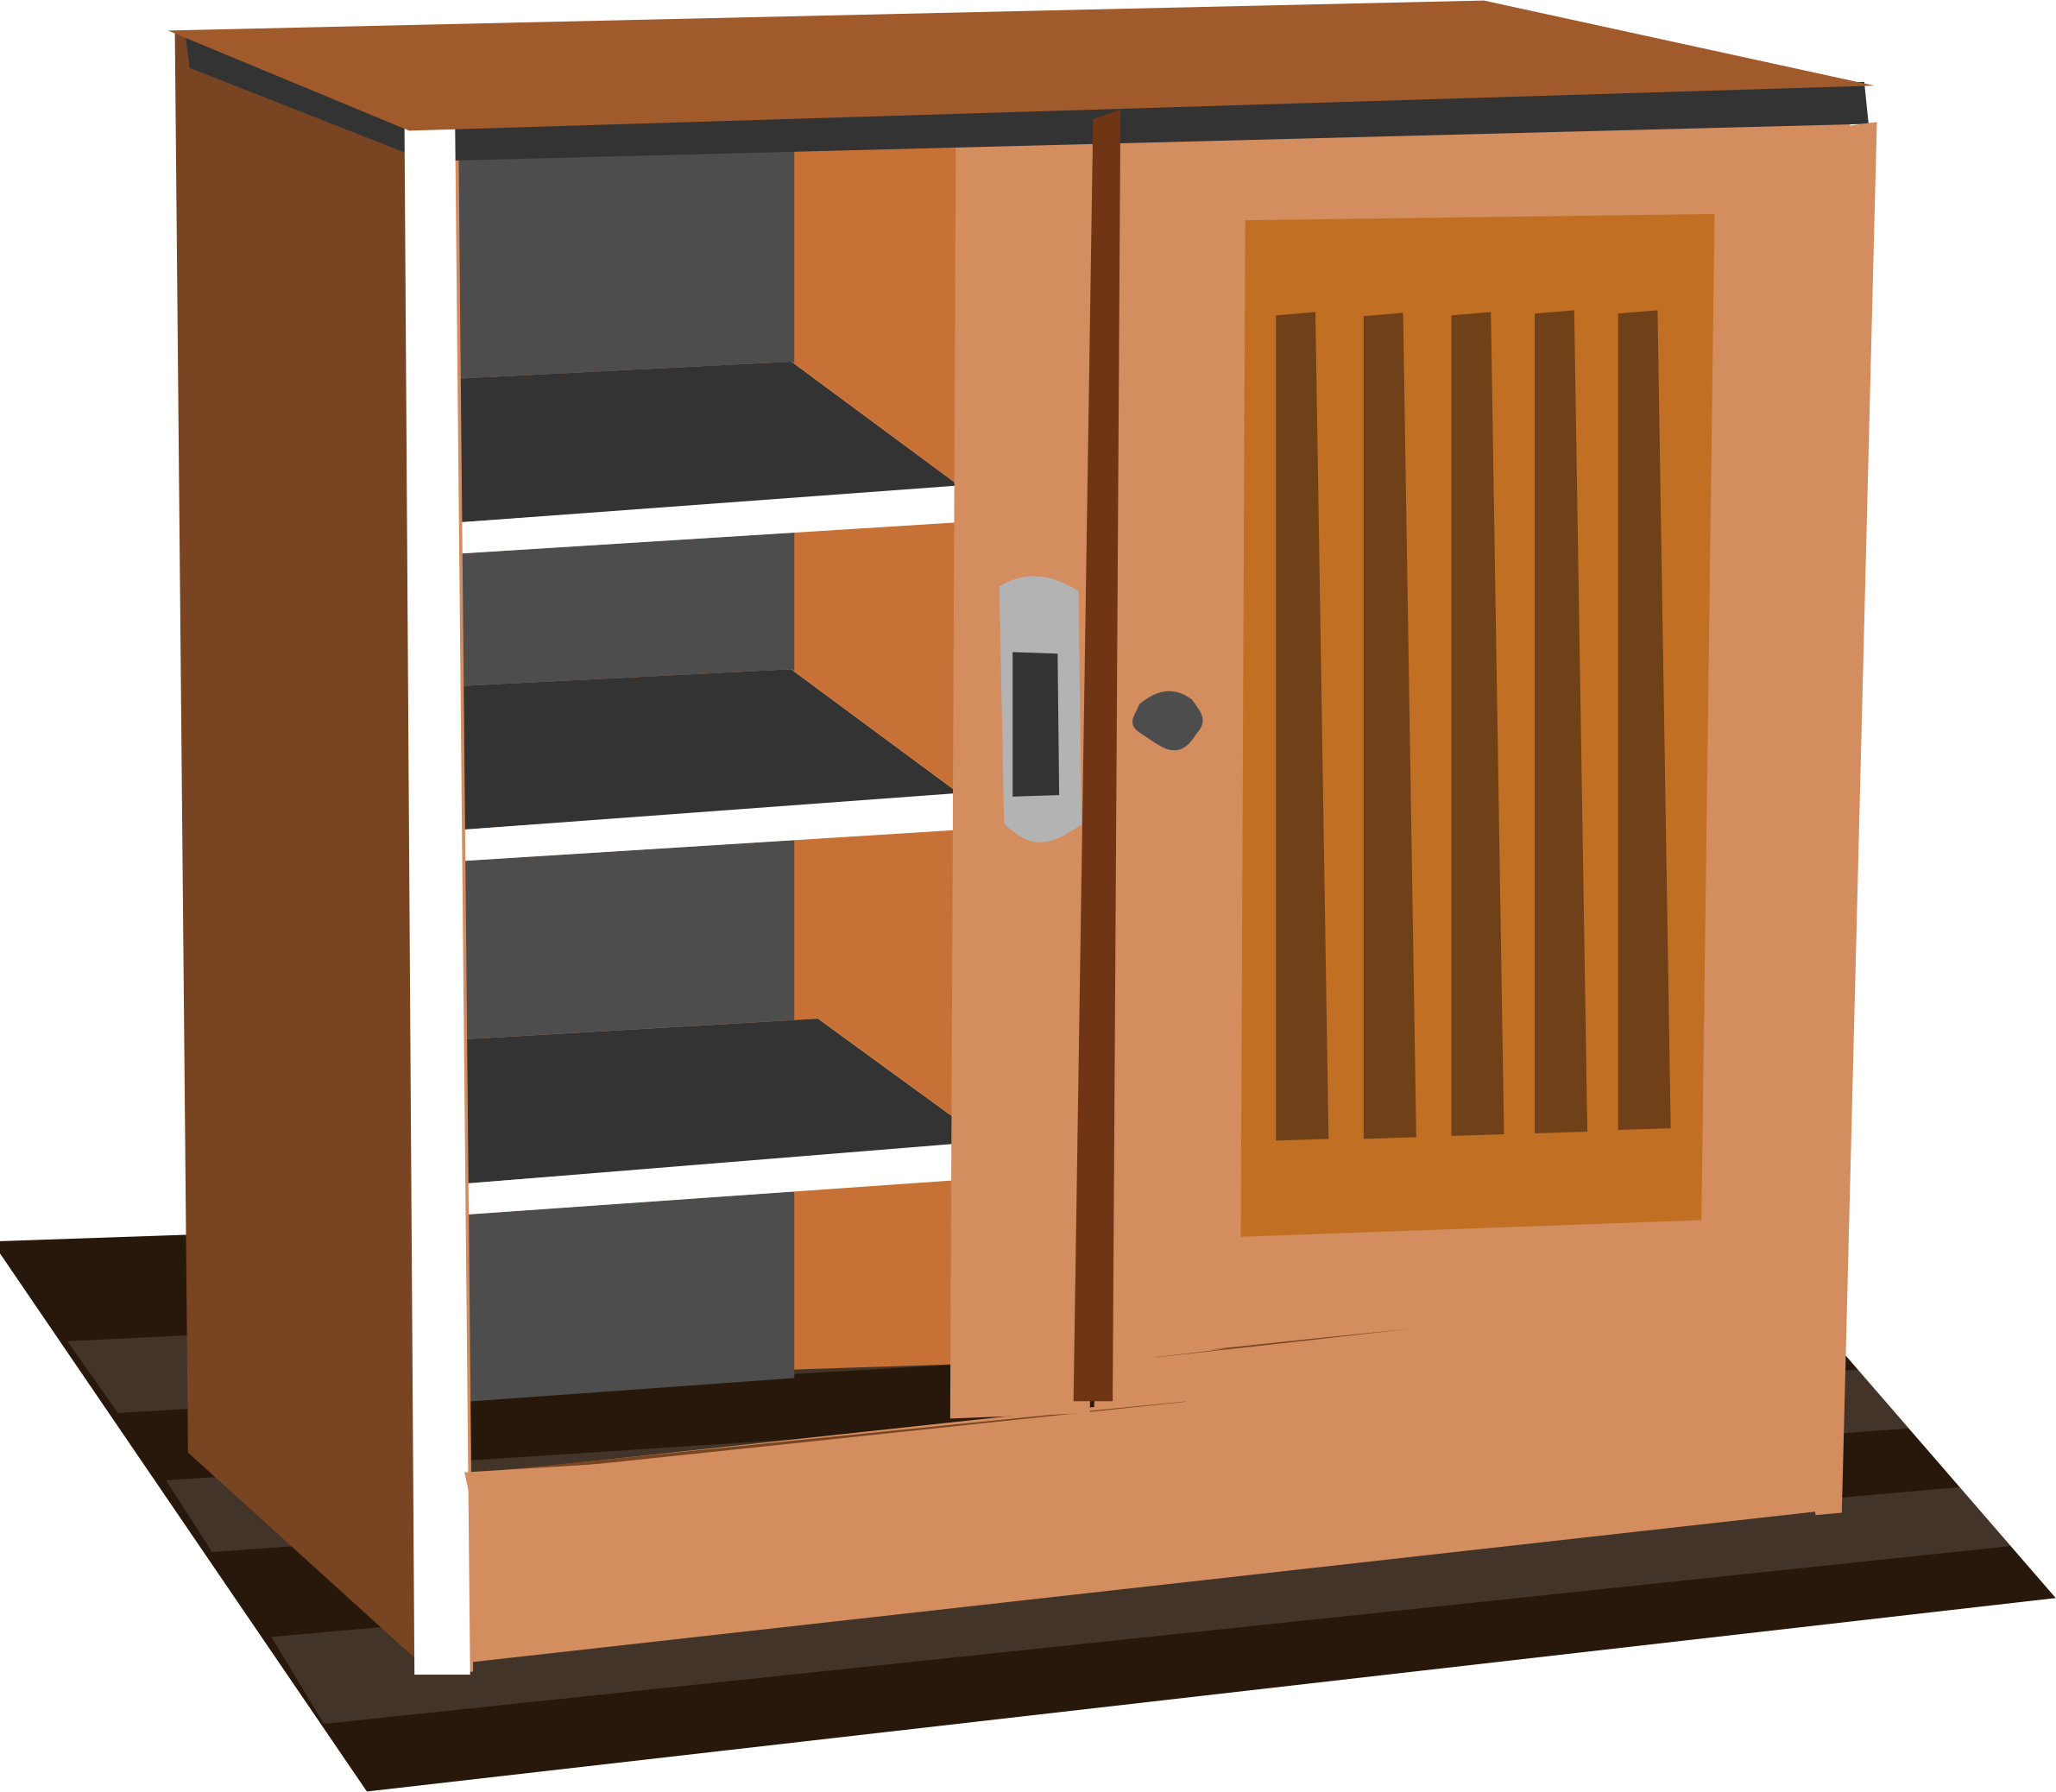 Wardrobe png clipart clipart royalty free download Cupboard, closet PNG images free download clipart royalty free download